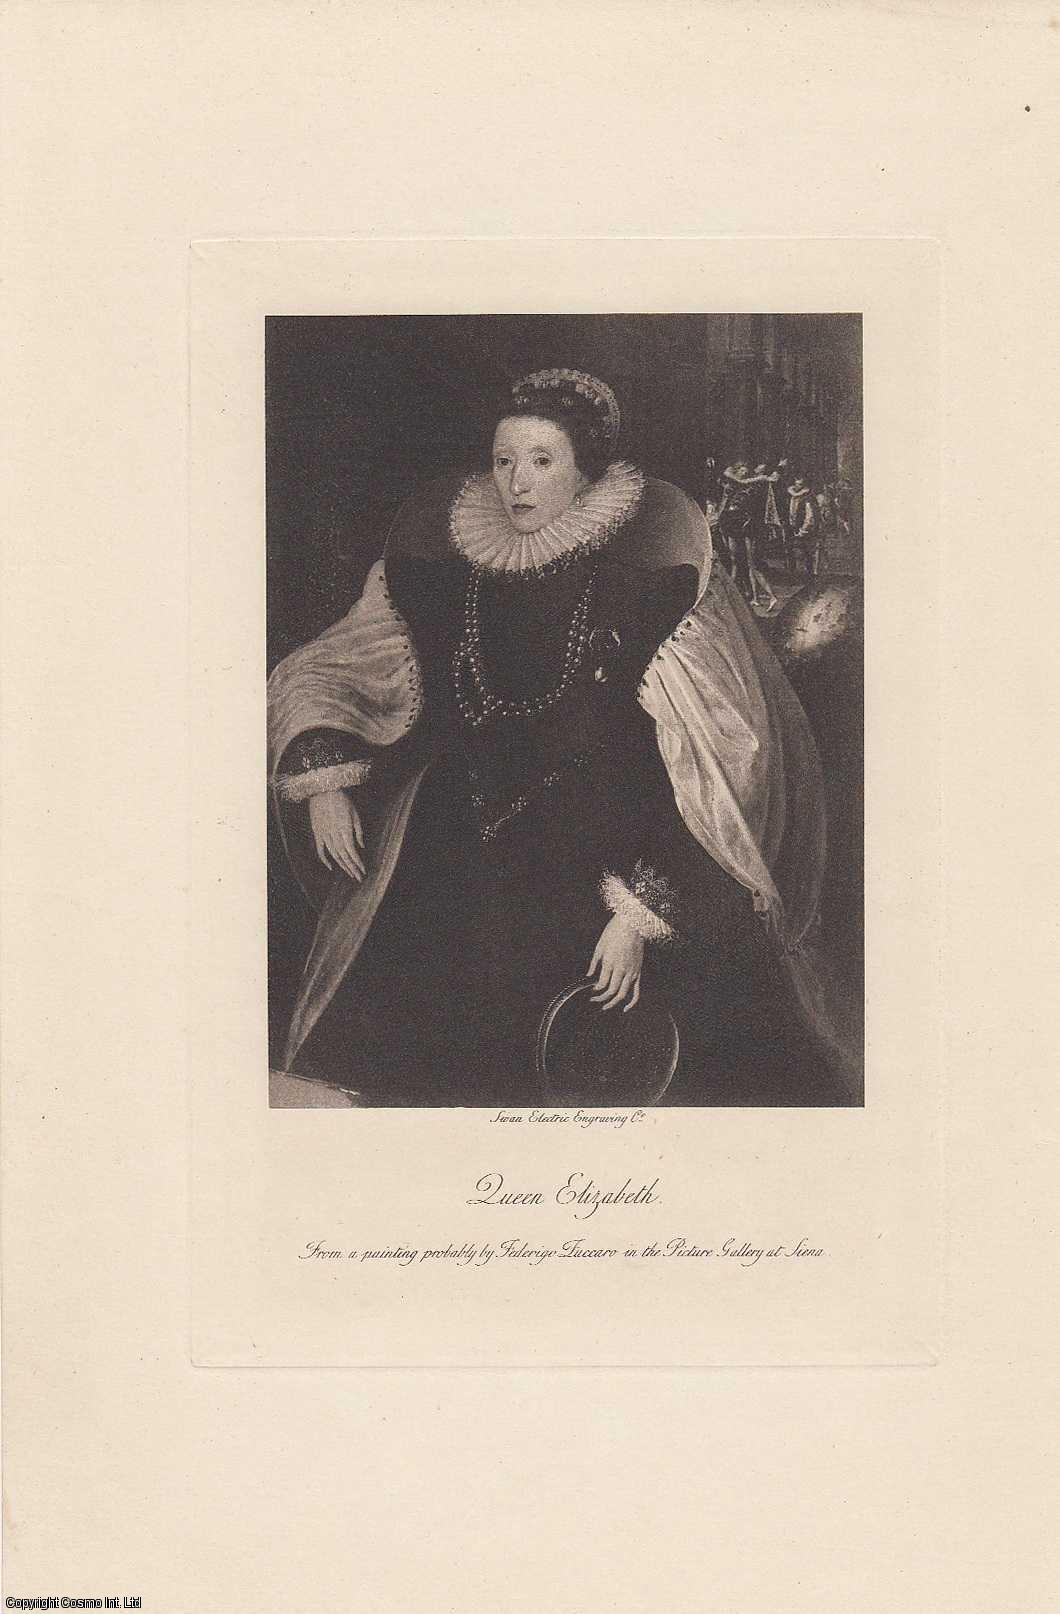 PORTRAIT. Queen Elizabeth. From a painting probably by Federigo Zuccaro., Cust, Lionel